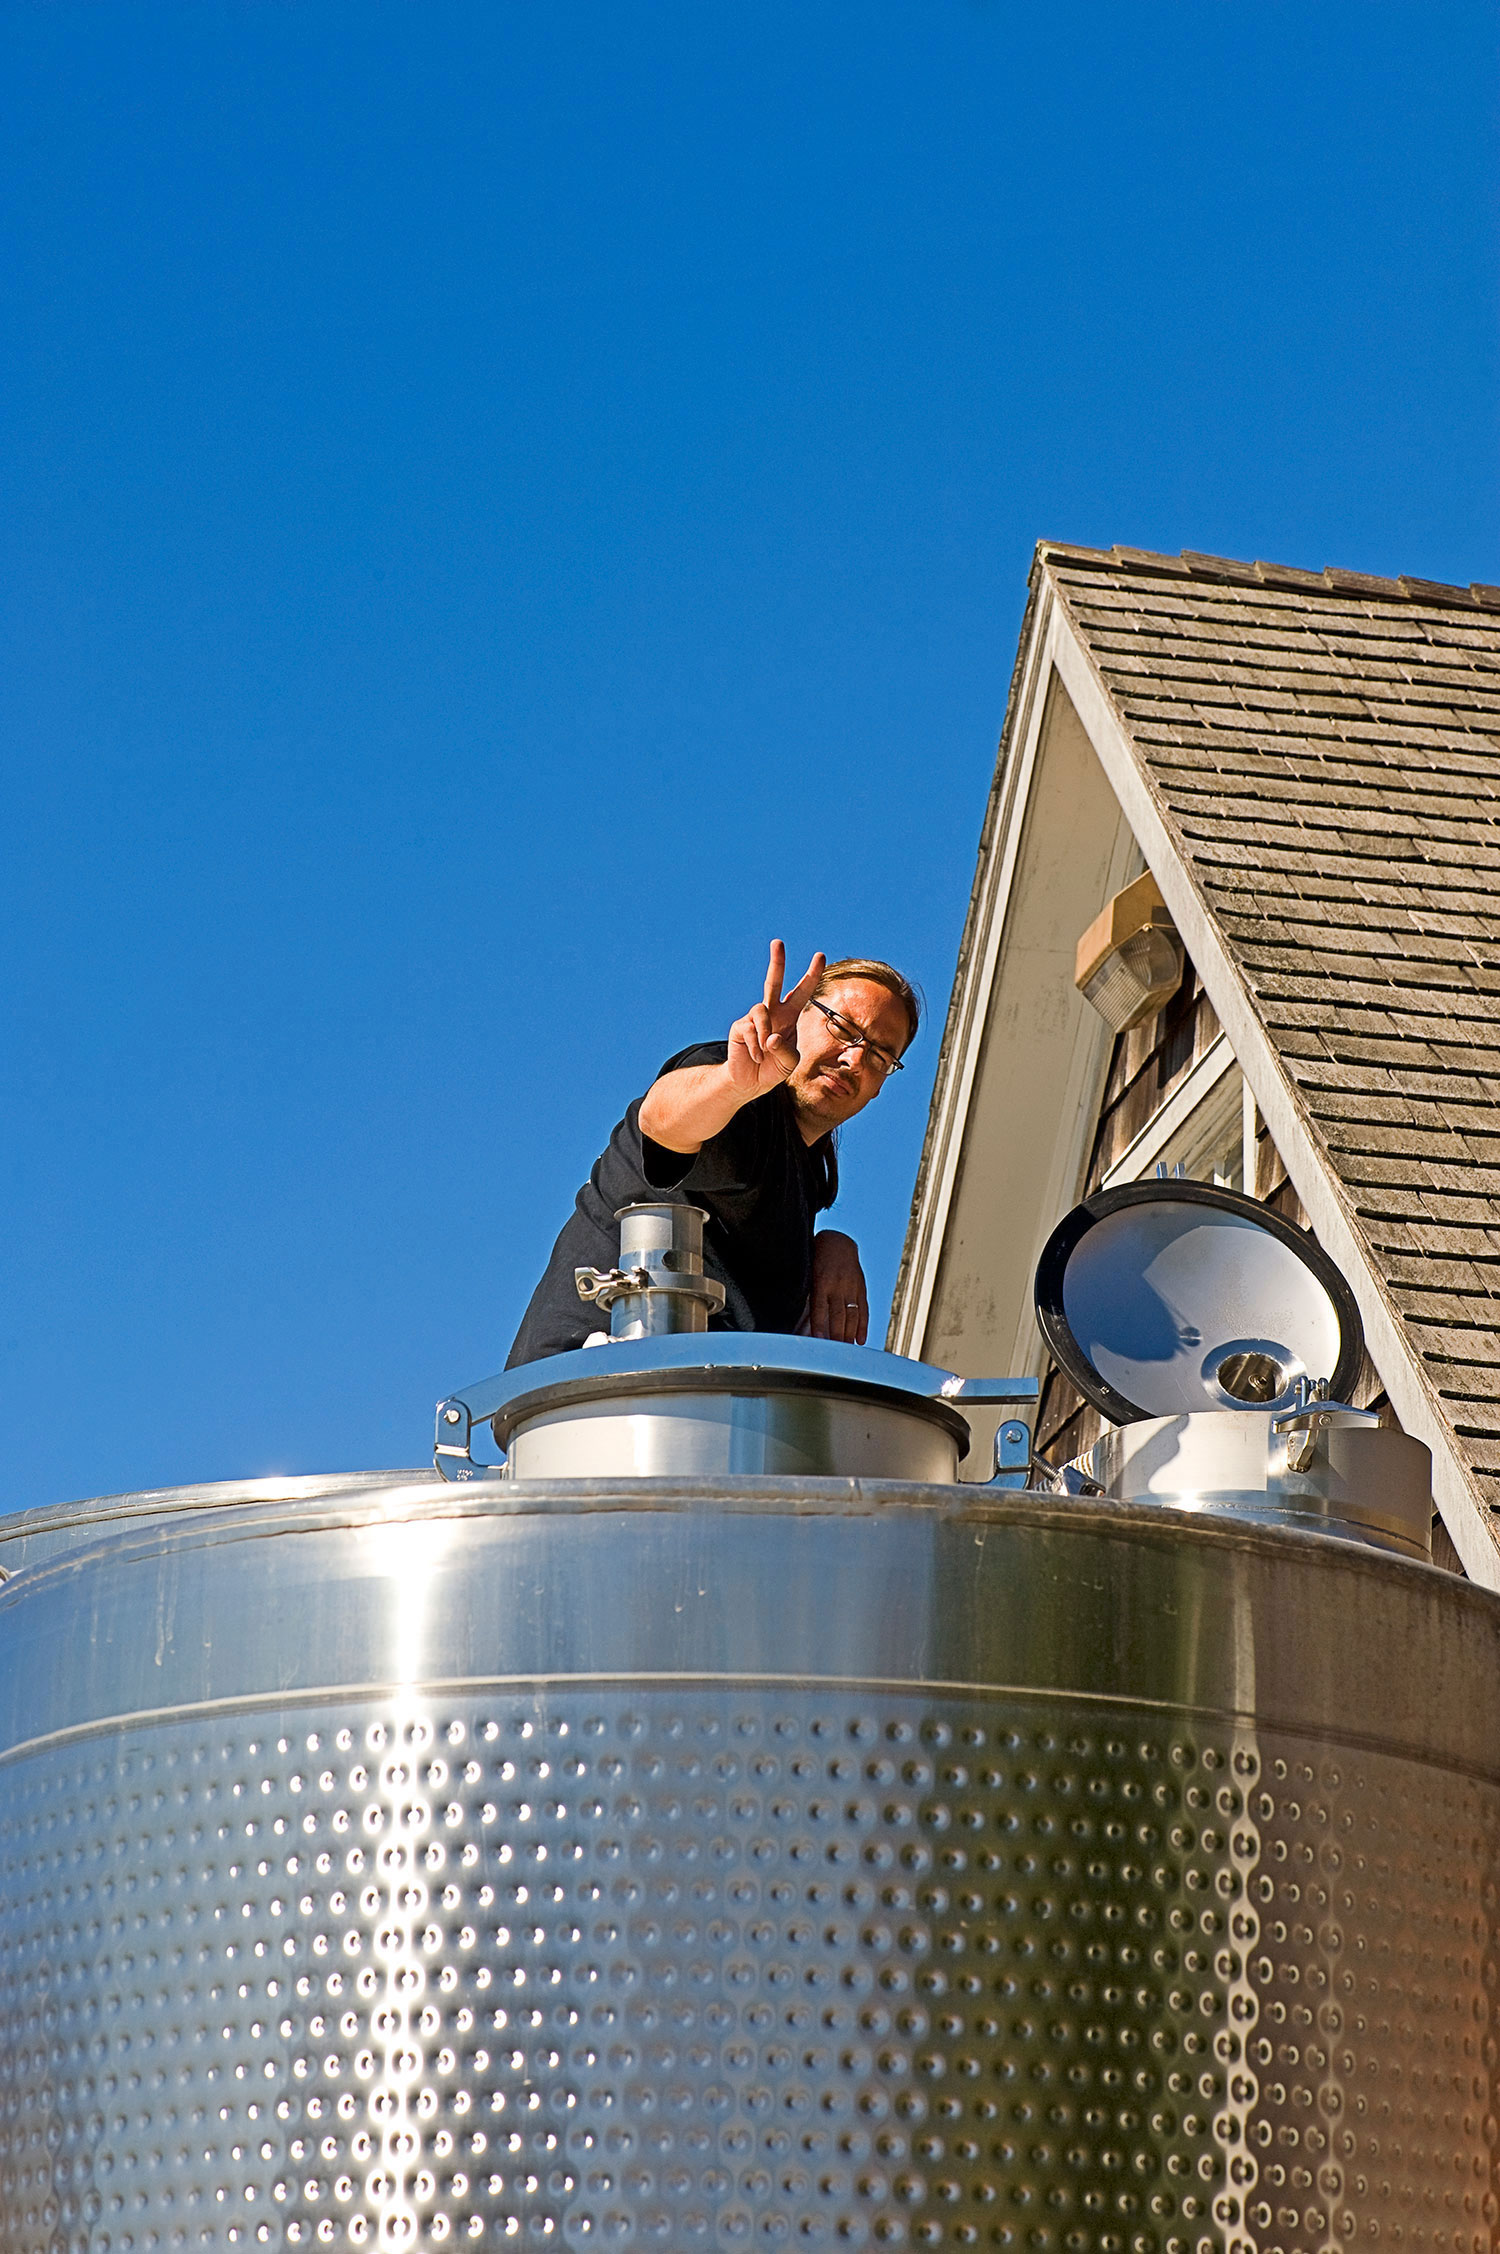 winemaker on top of wine tank